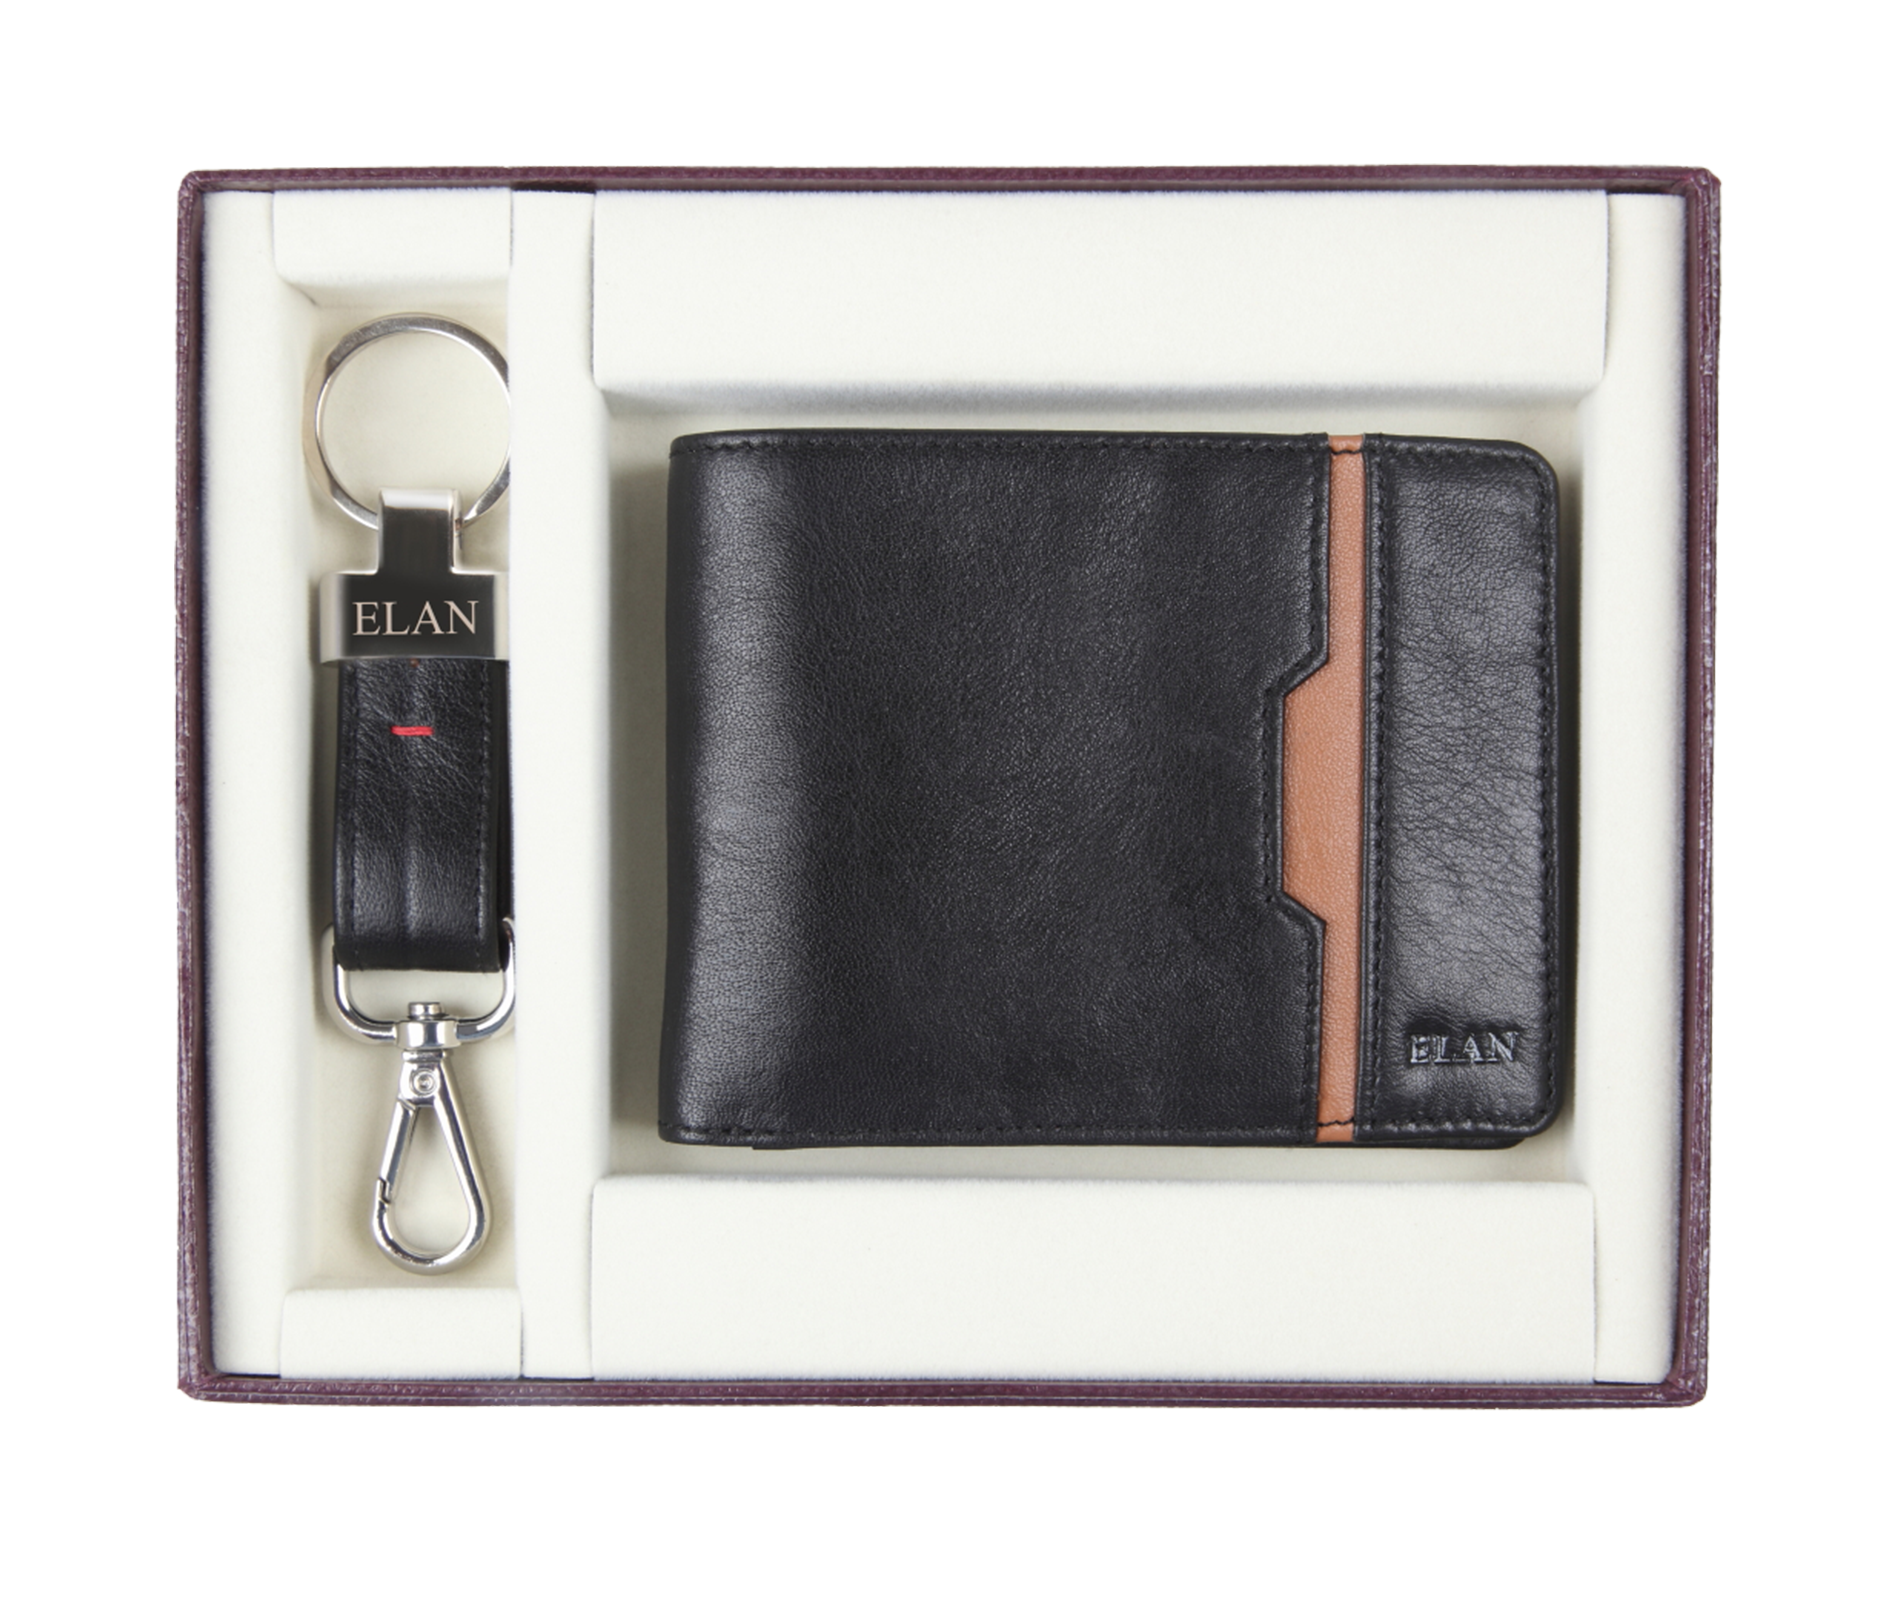 Card wallet and Key fob